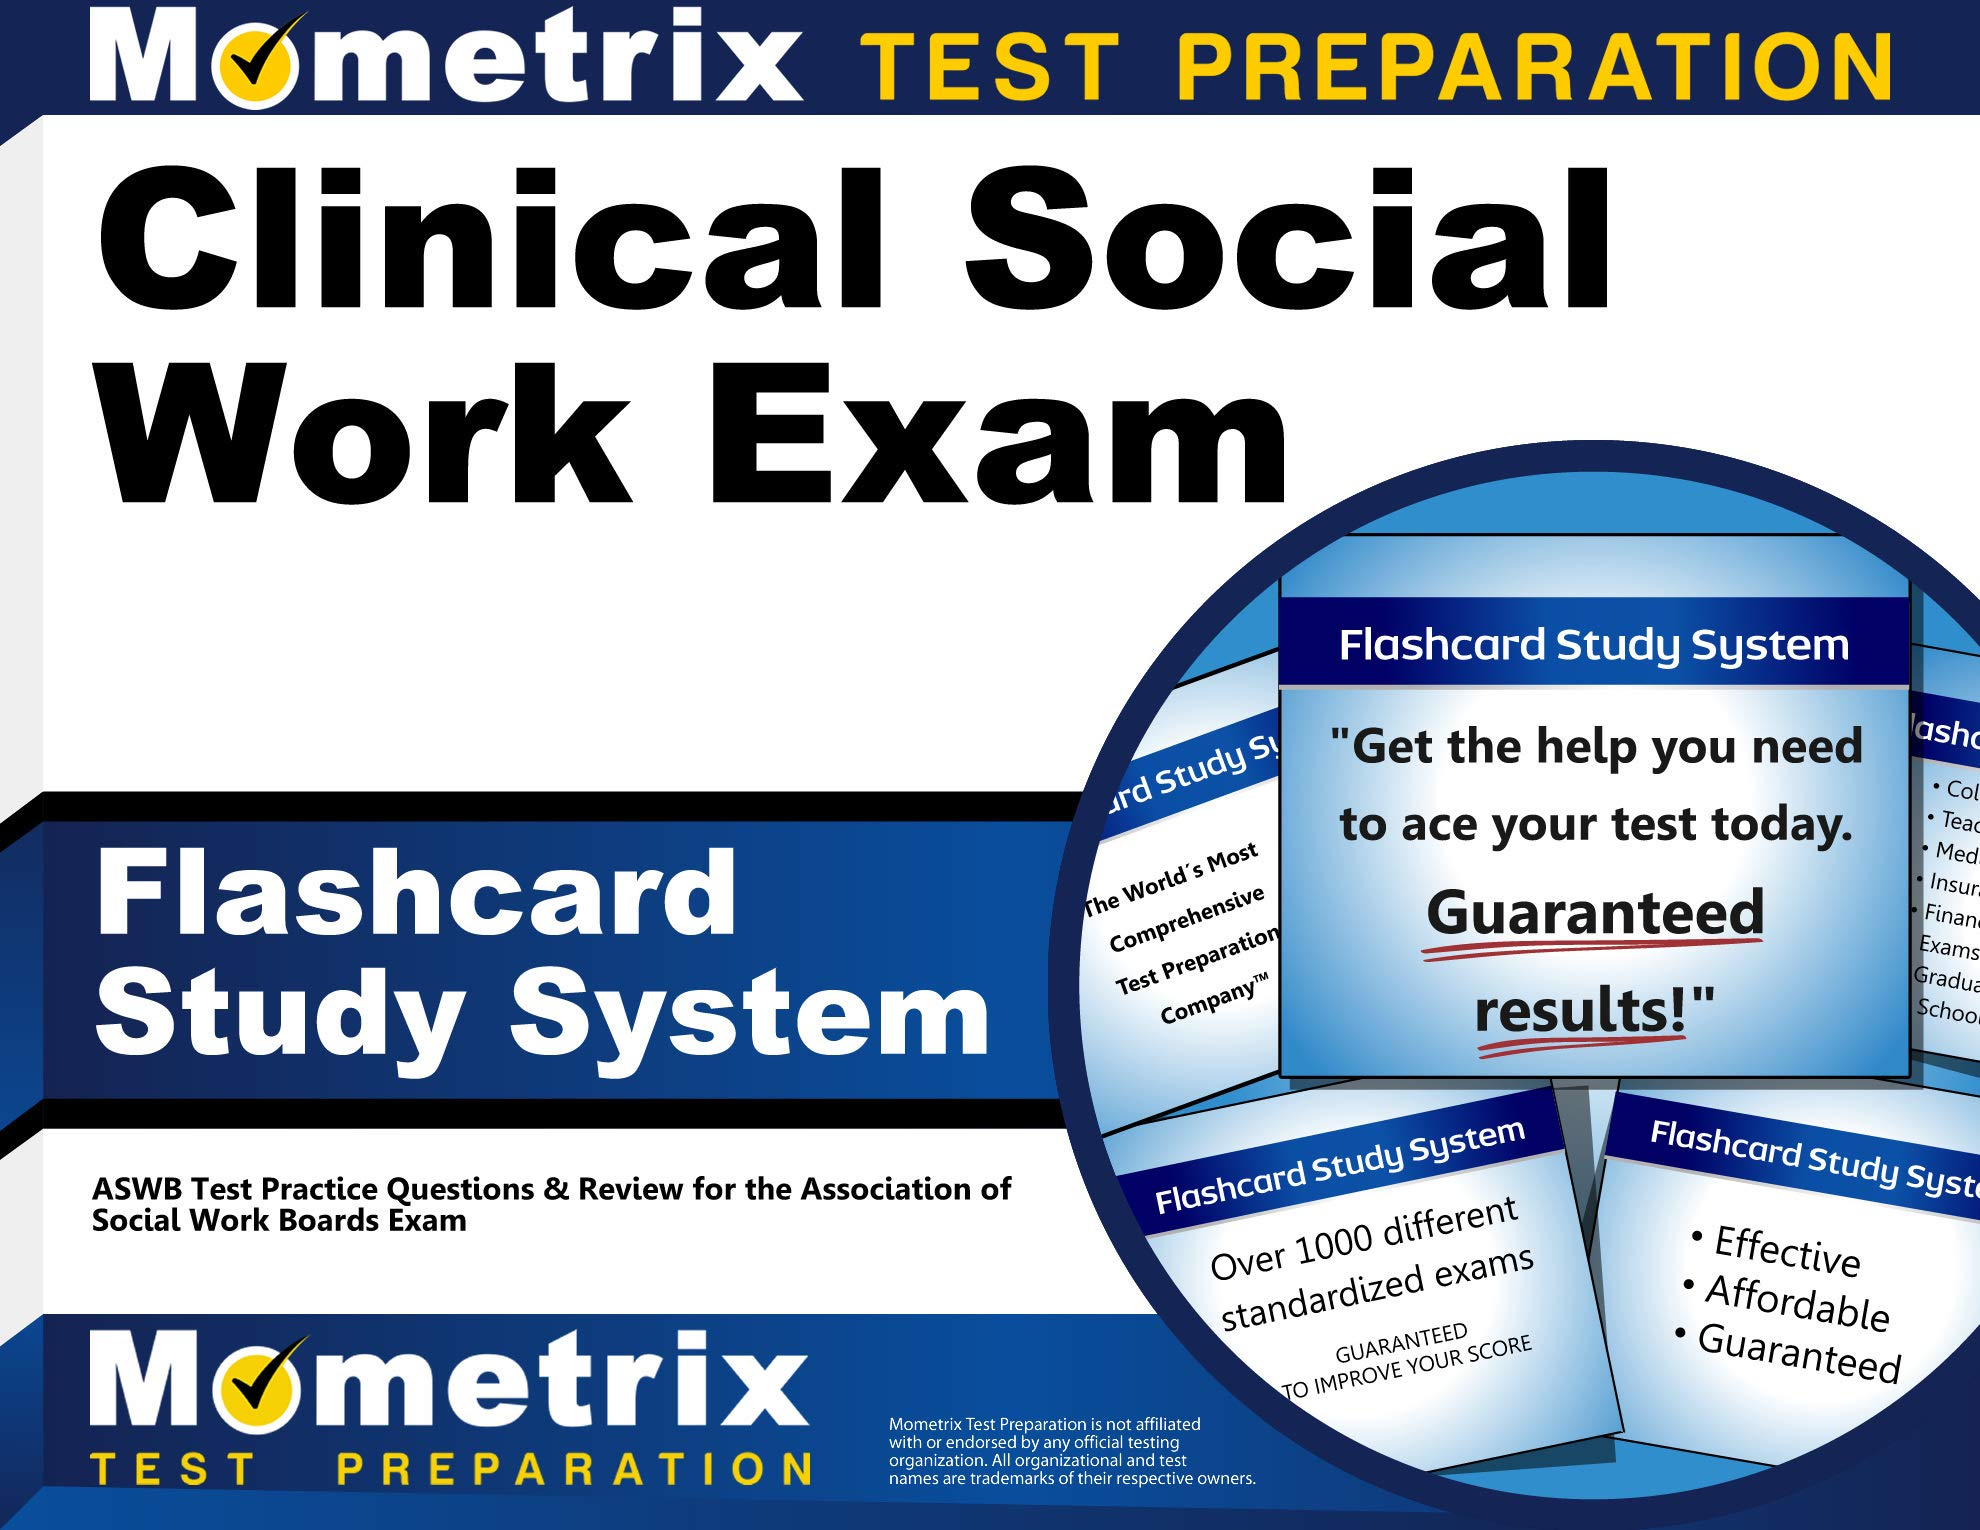 Clinical Social Work Exam Flashcard Study System: ASWB Test Practice Questions & Review for the Association of Social Work Boards Exam (Cards) by Mometrix Media LLC